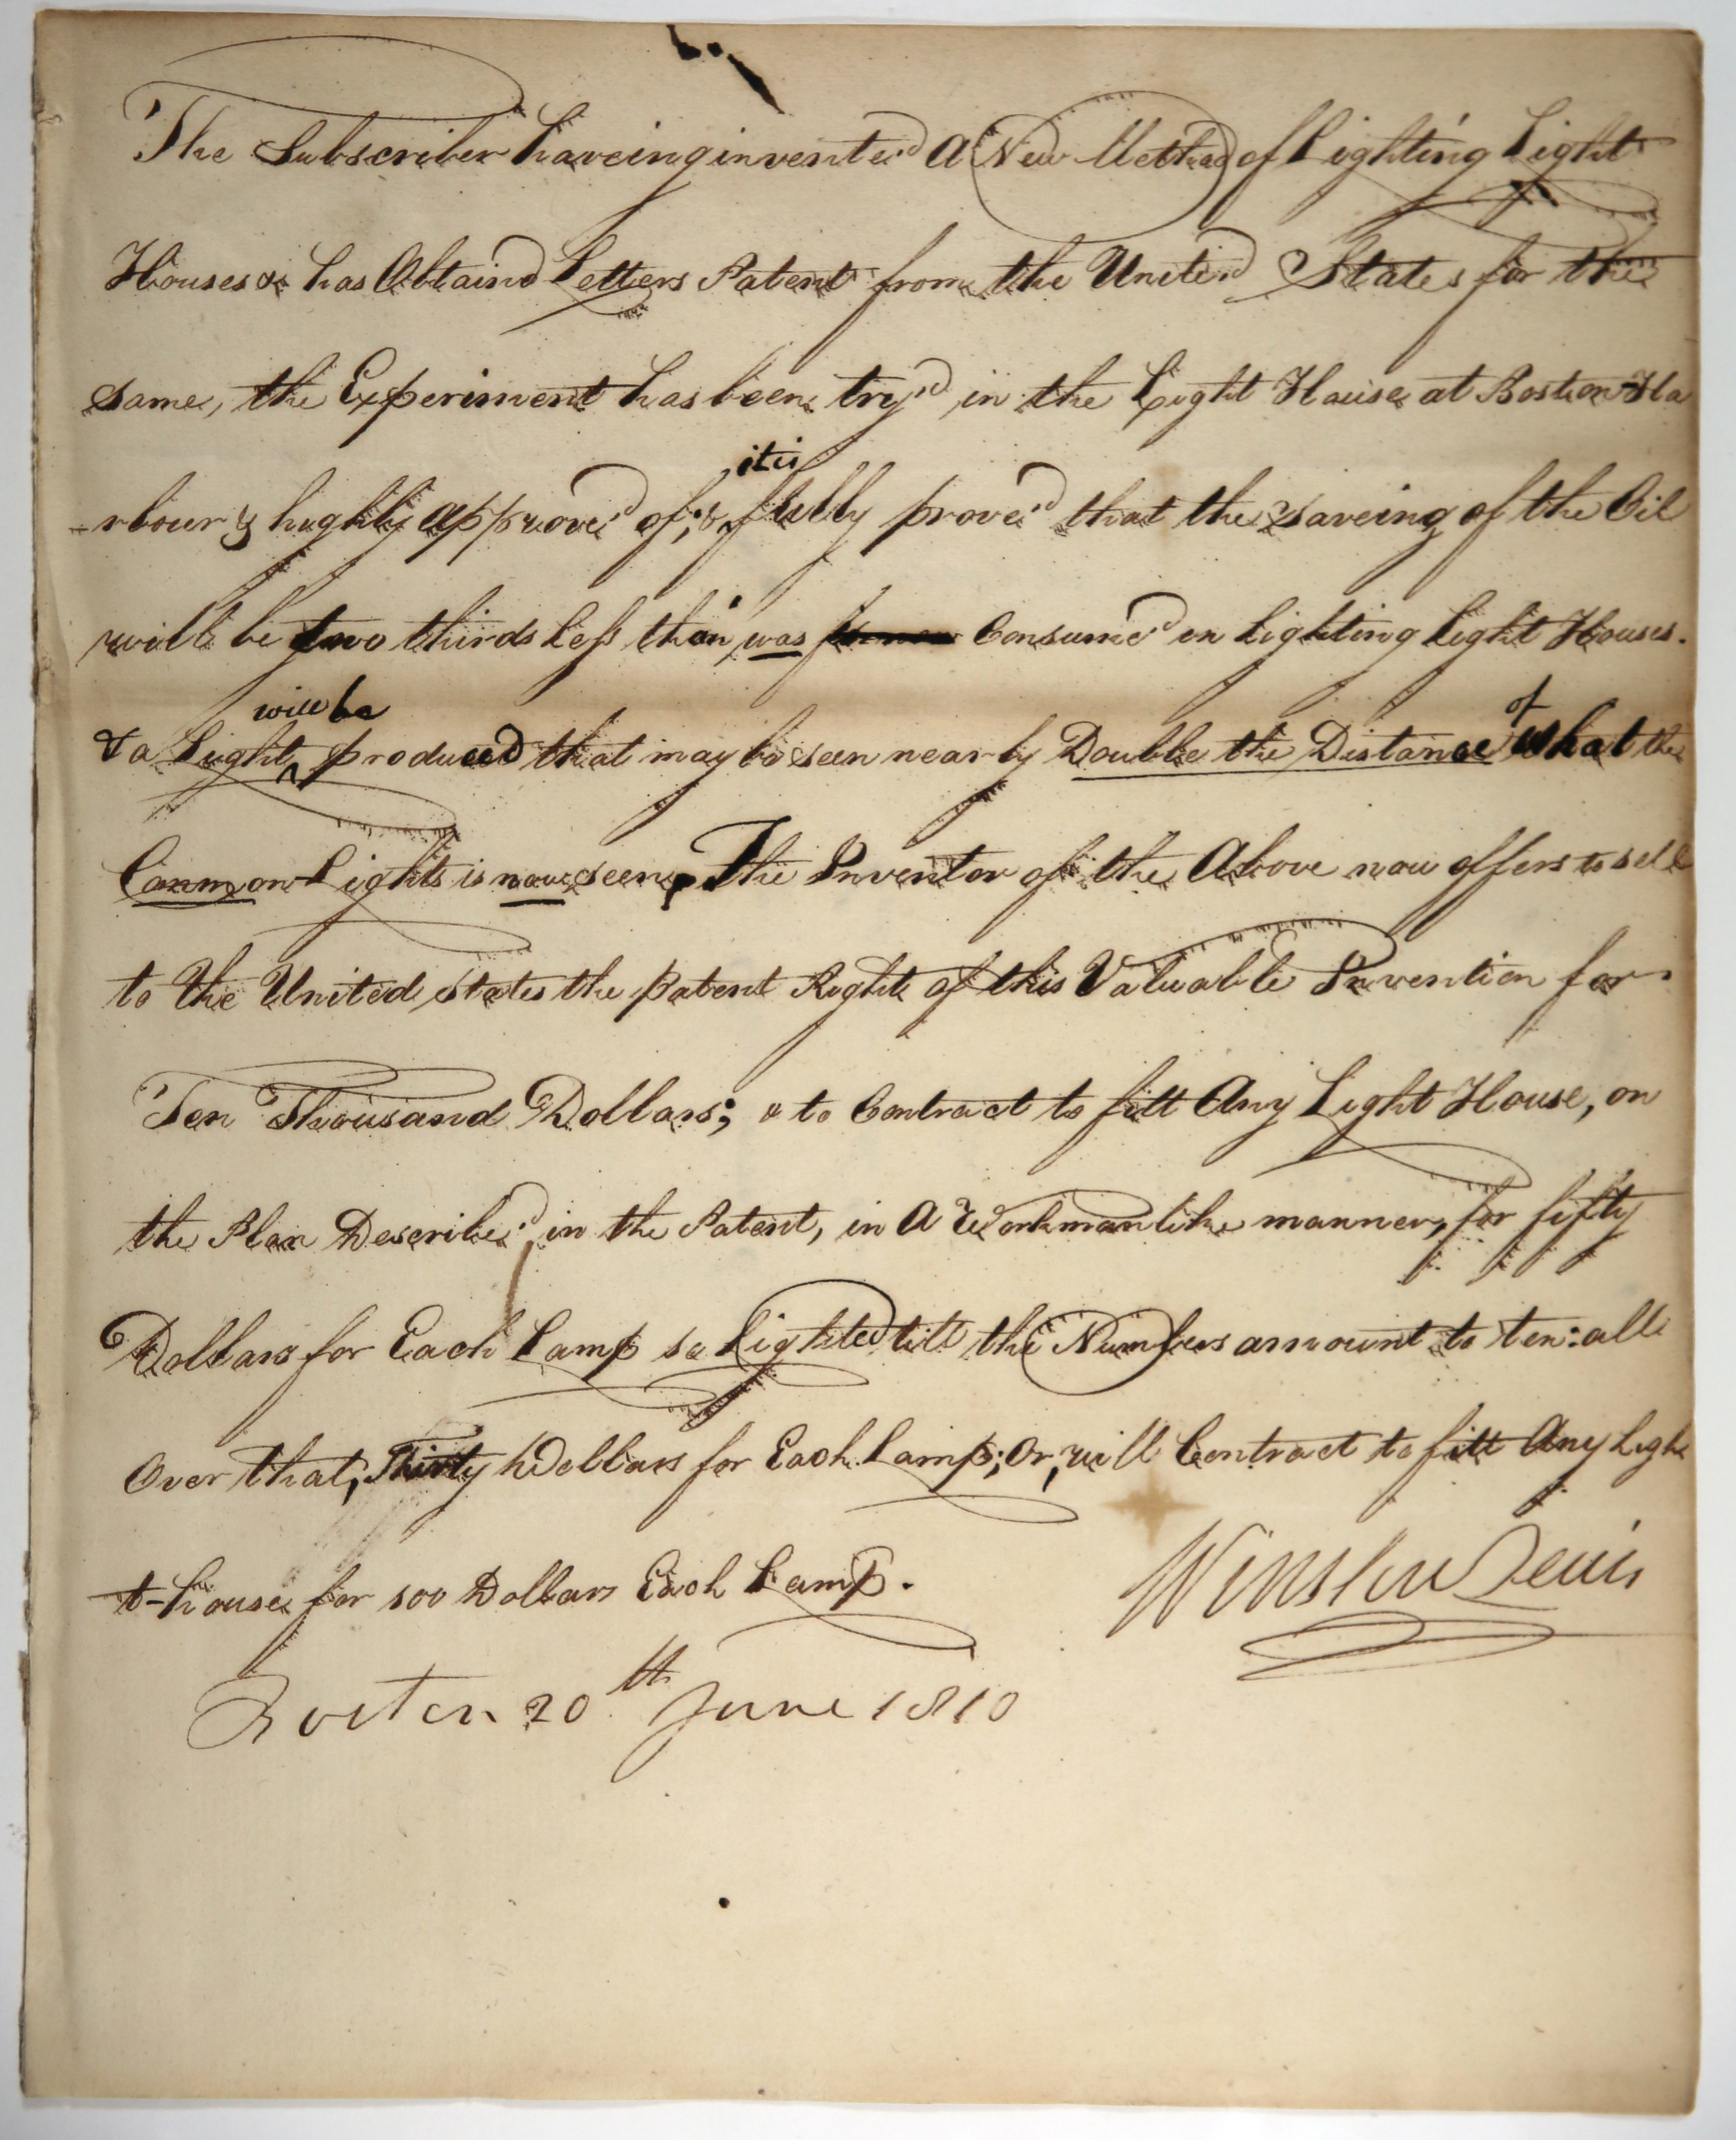 Image of letter by Winslow Lewis to Henry Dearborn, June 20, 1810.